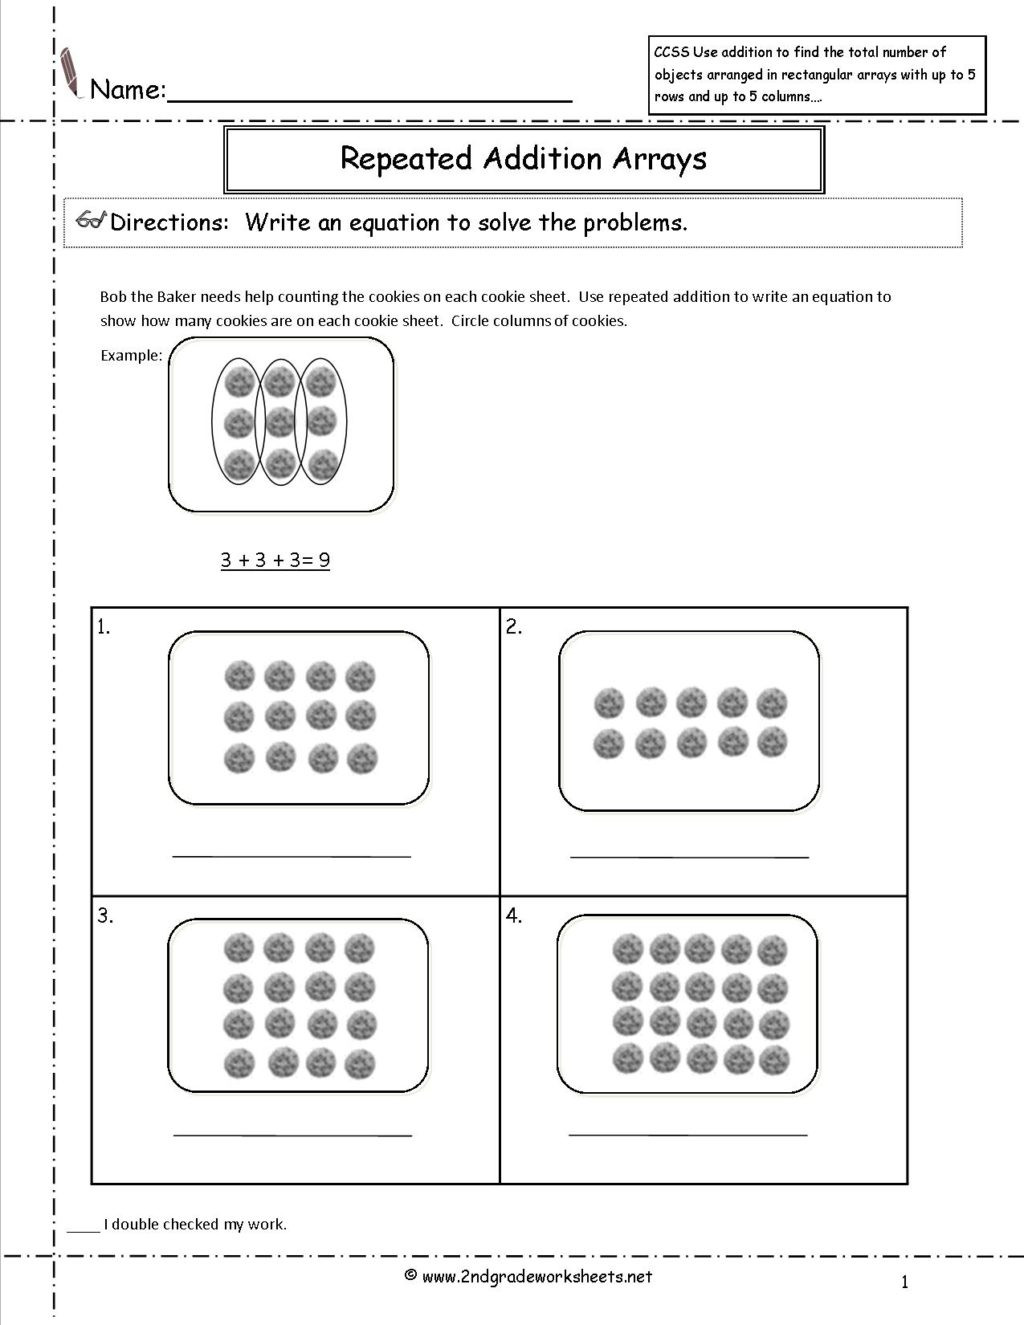 Array Worksheets 3rd Grade Worksheet Mon Core Math Worksheets 3rdrade